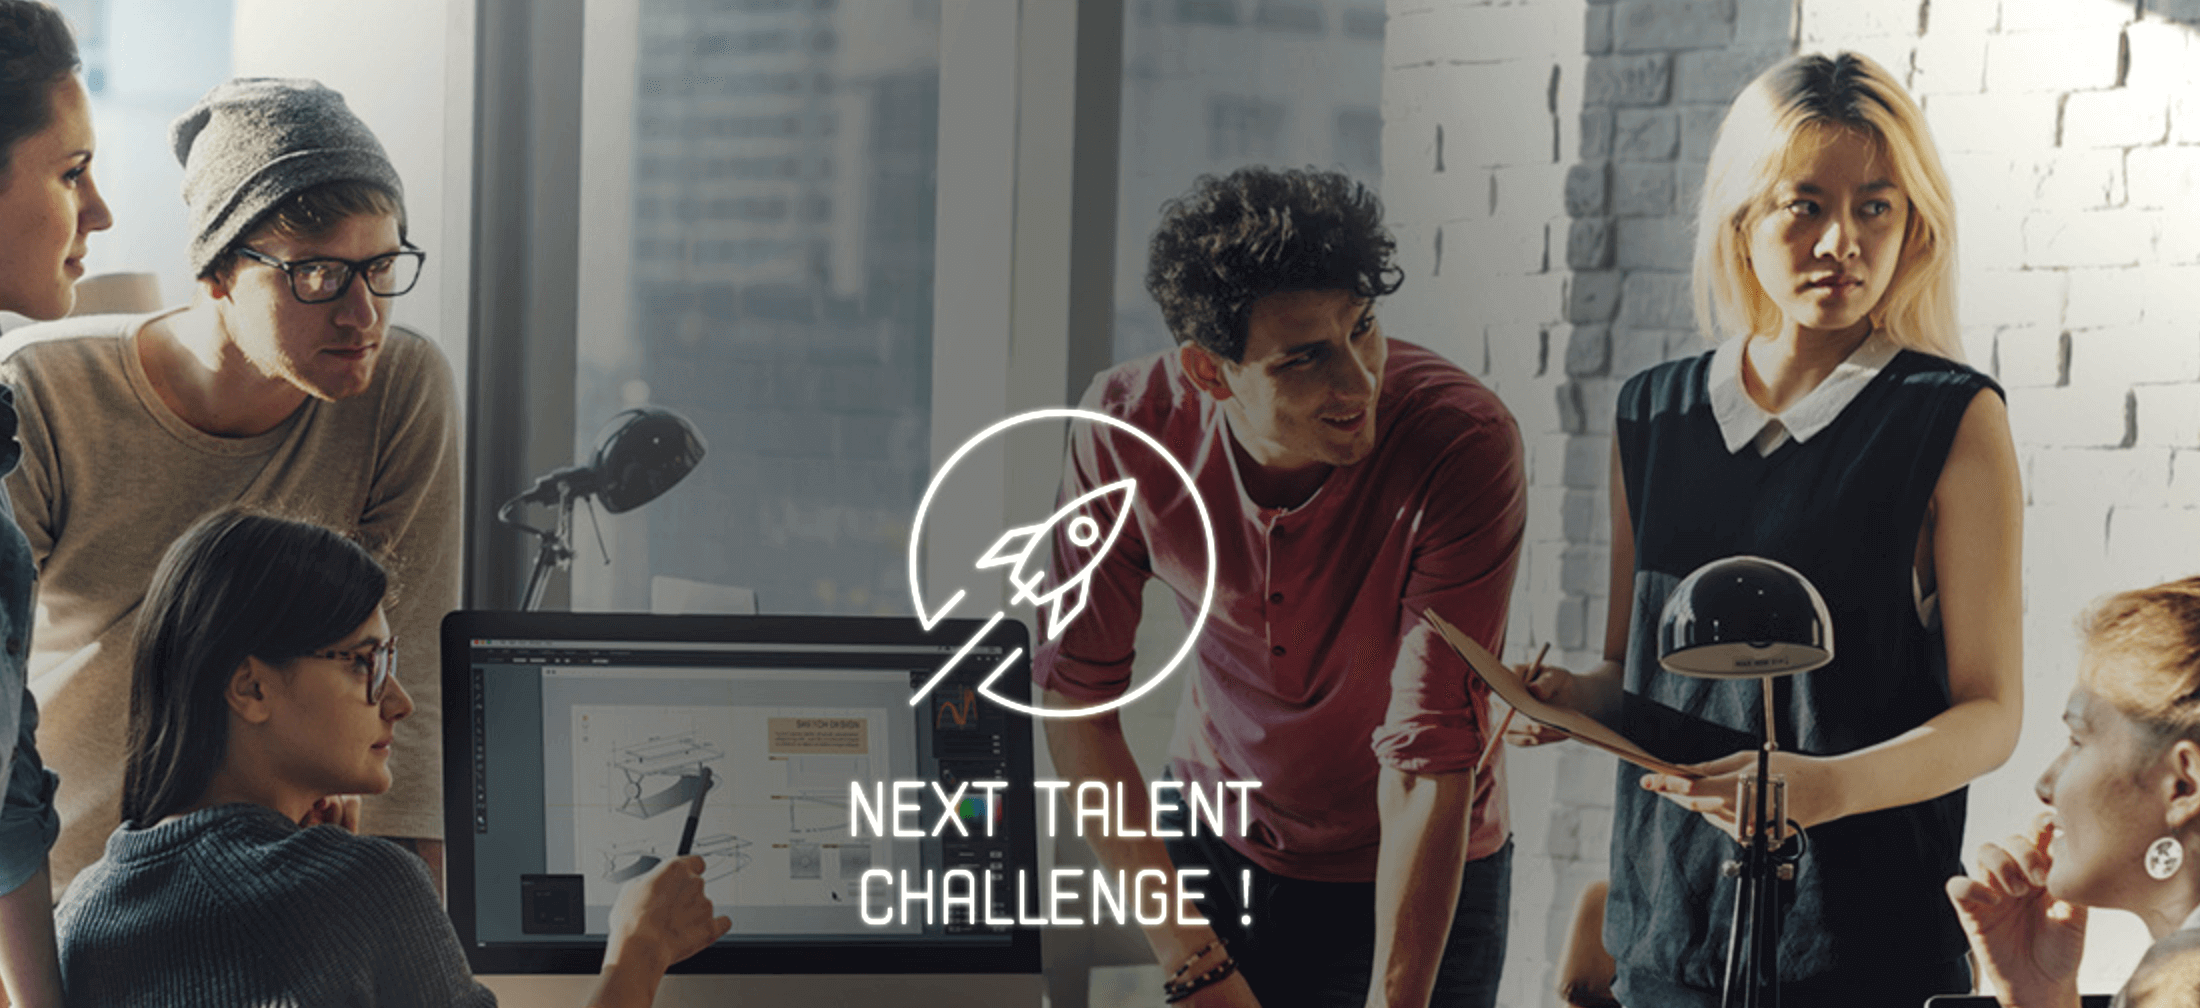 Bannière Next Talent challenge